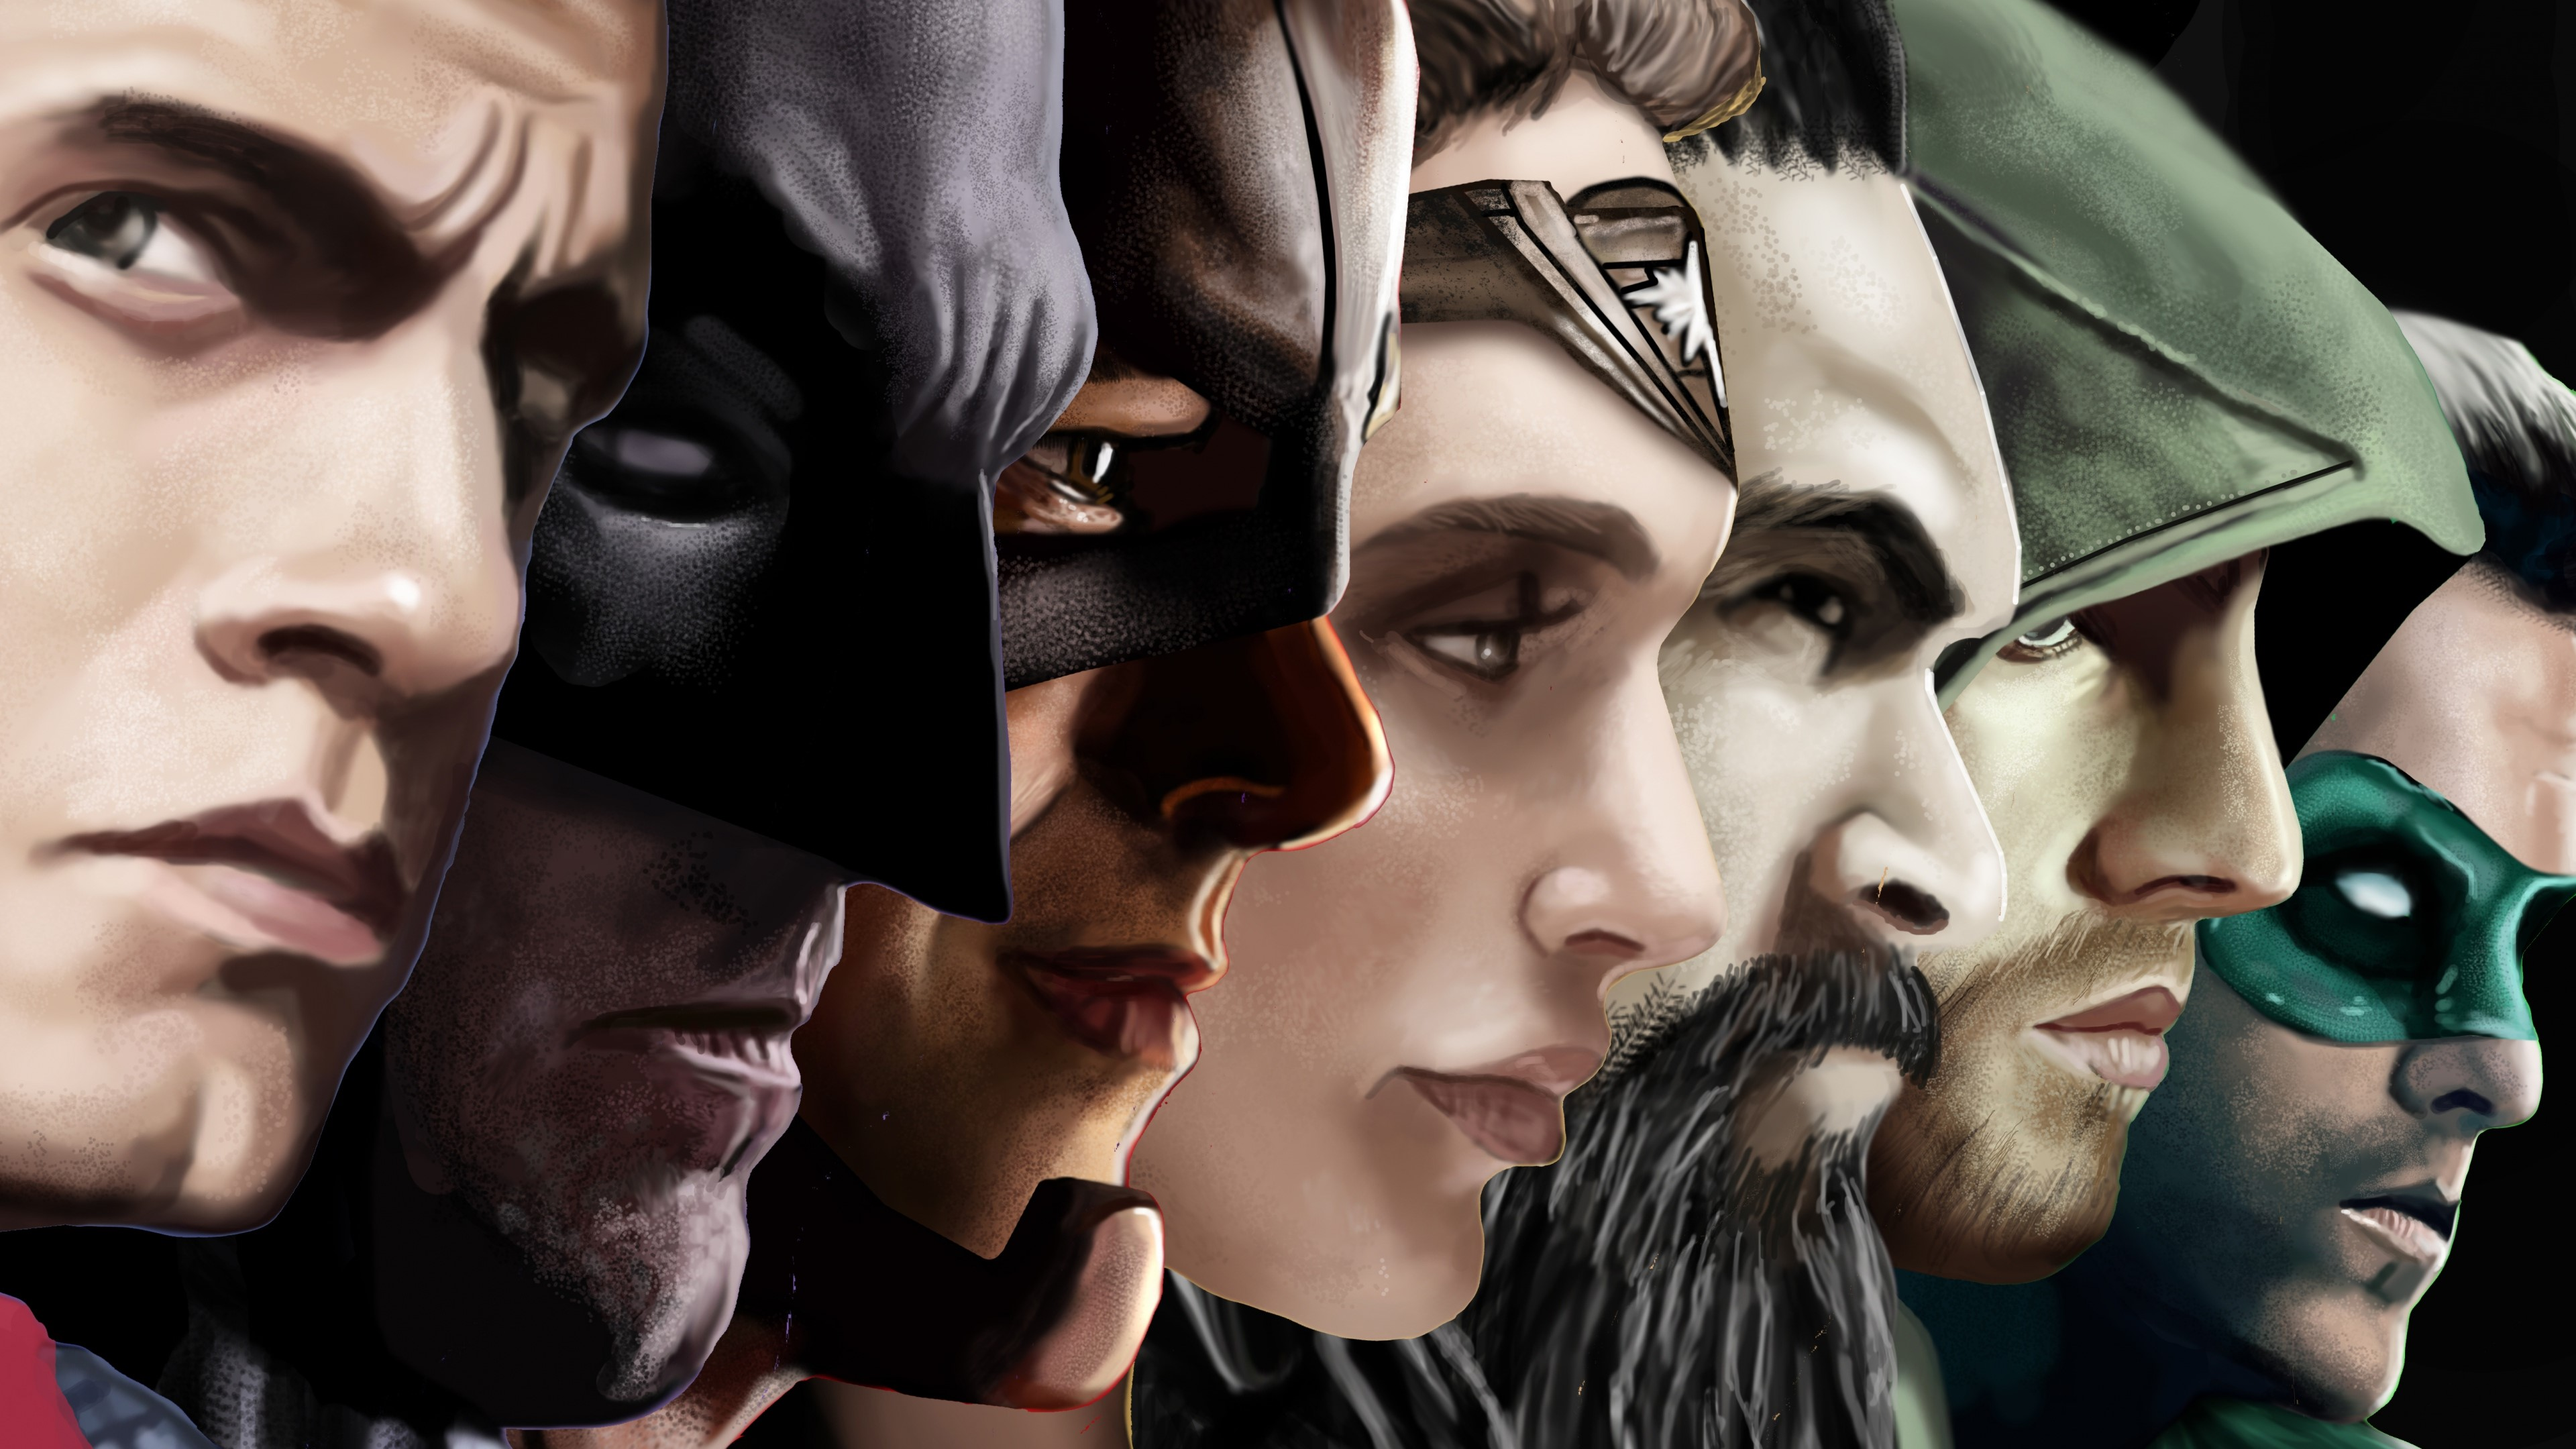 Wallpaper League of Justice